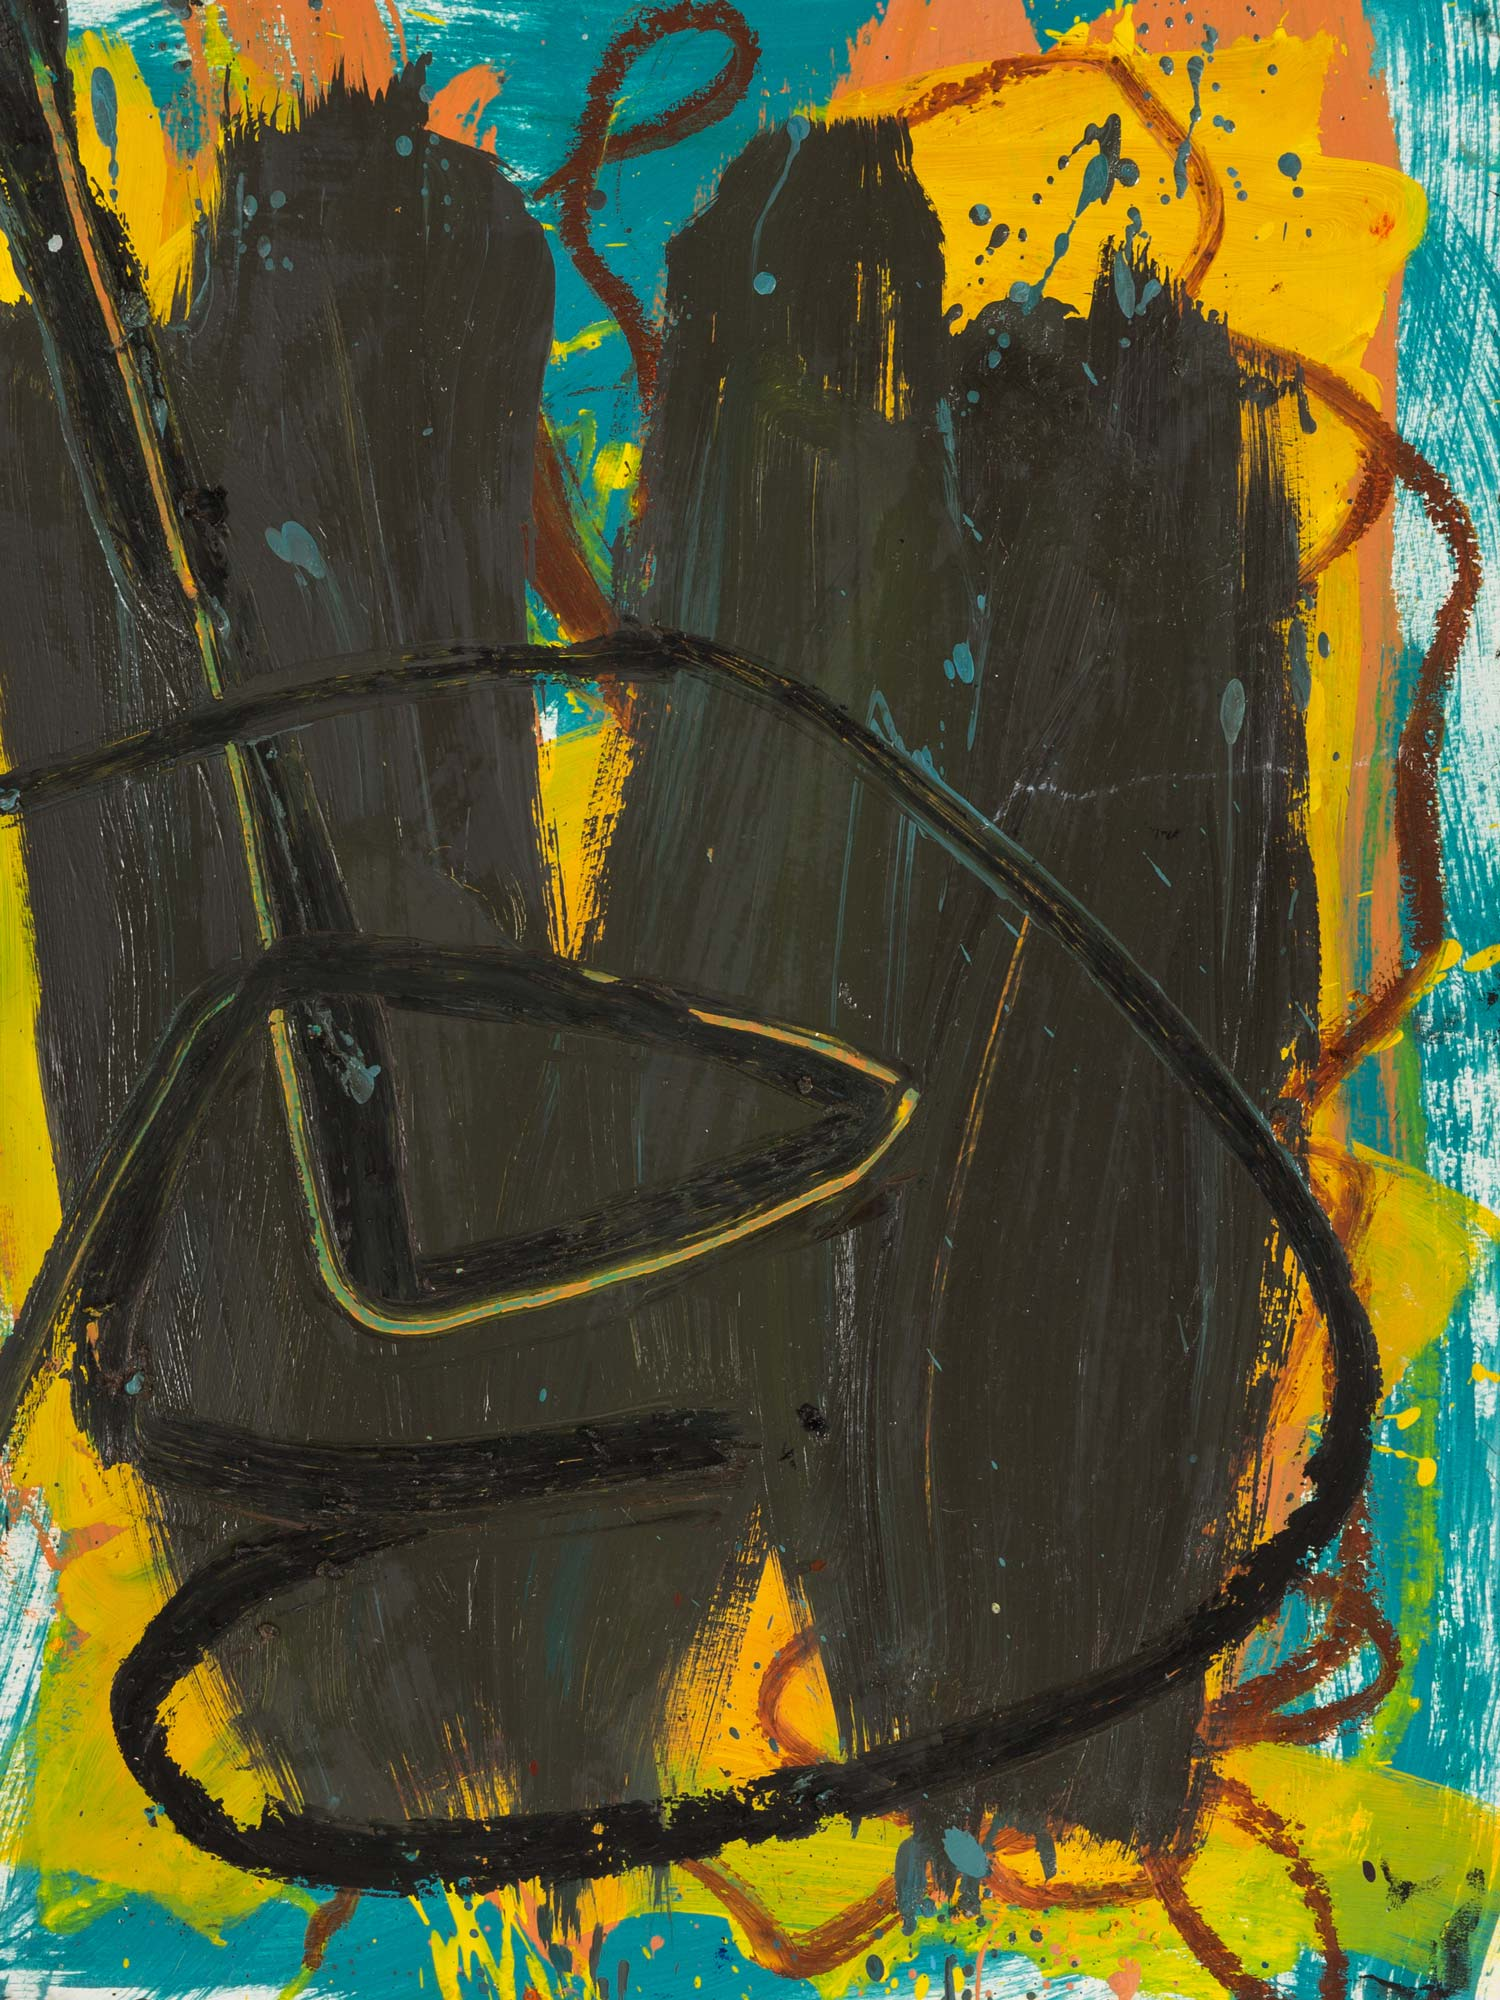 Untitled  , oil on paper, 24 x 18 in. ©Denise Gale 2013